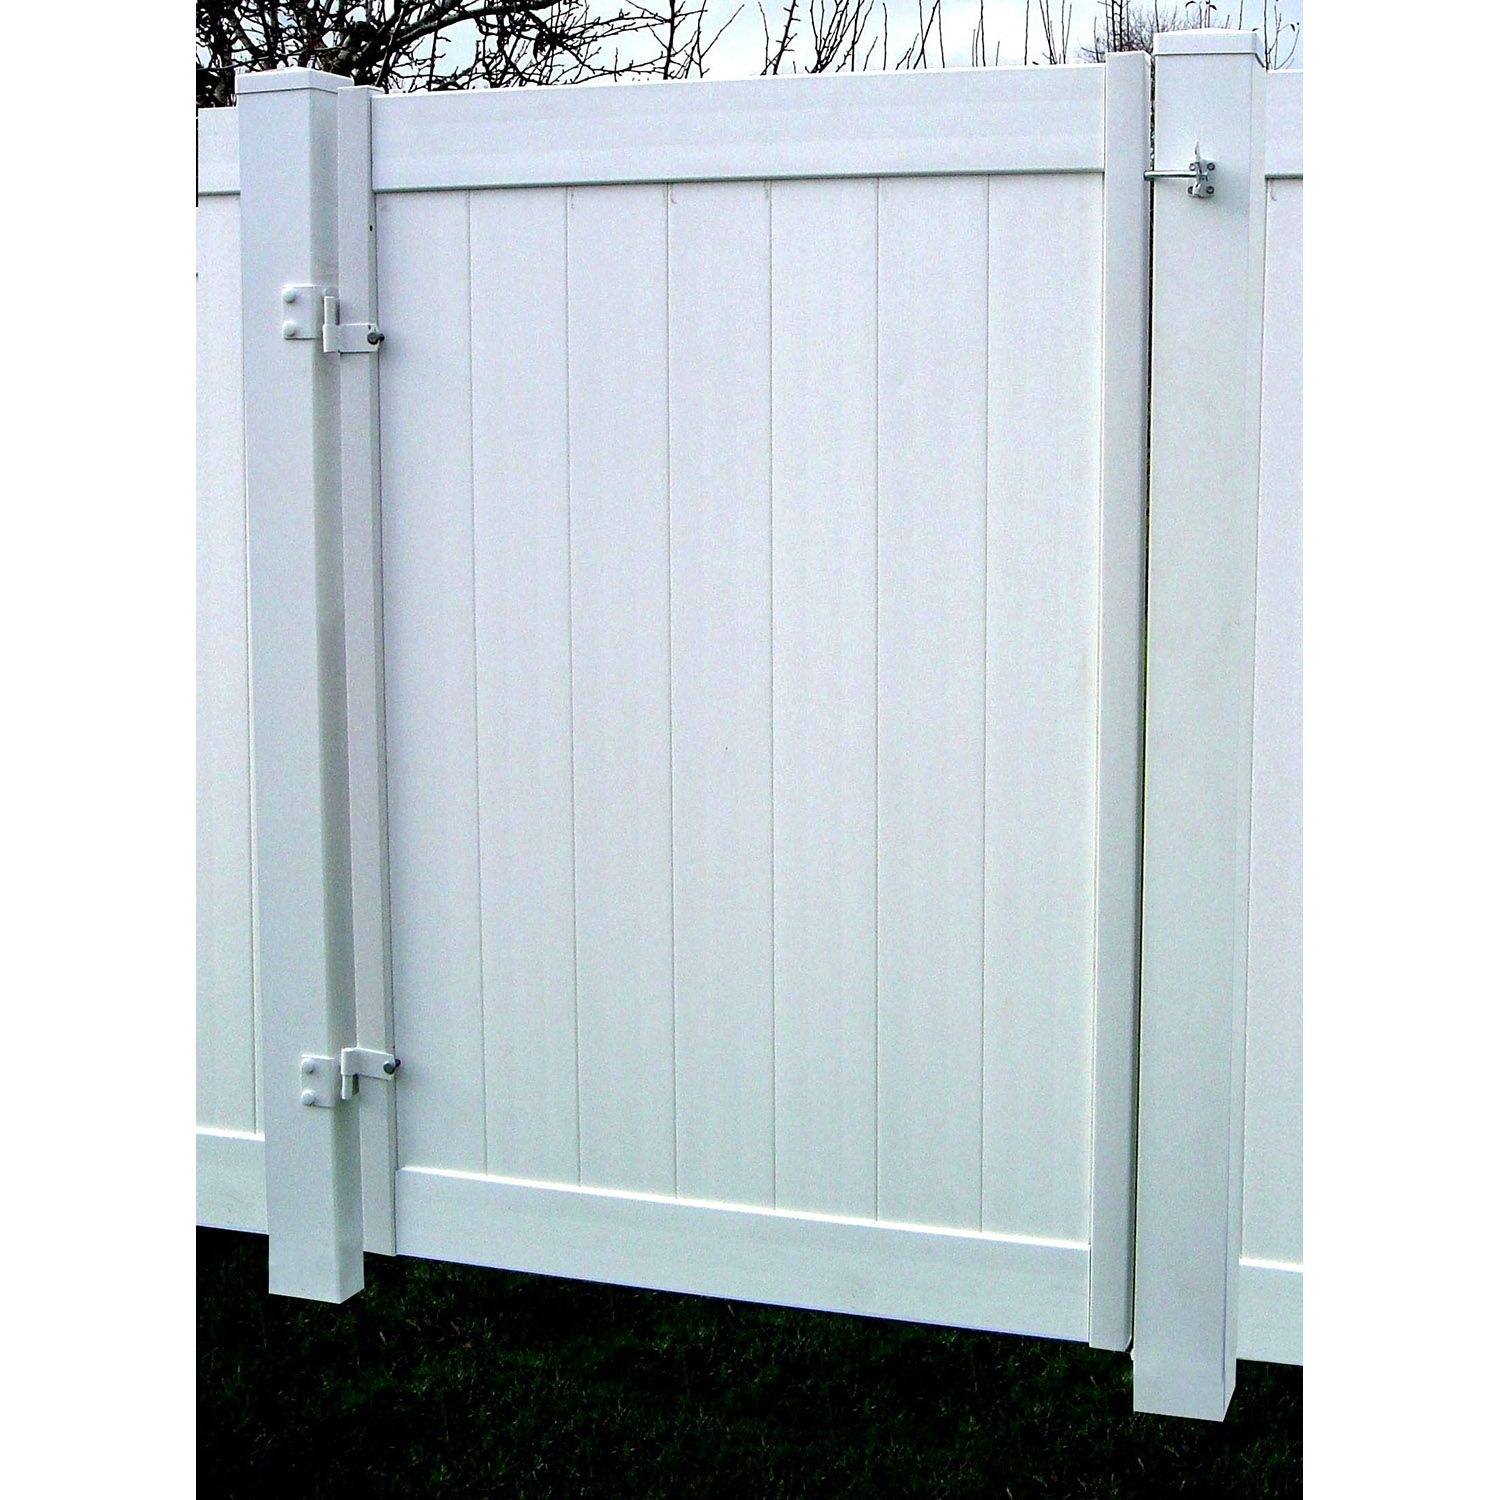 Jewett-Cameron Double Privacy Fence Gate Frame